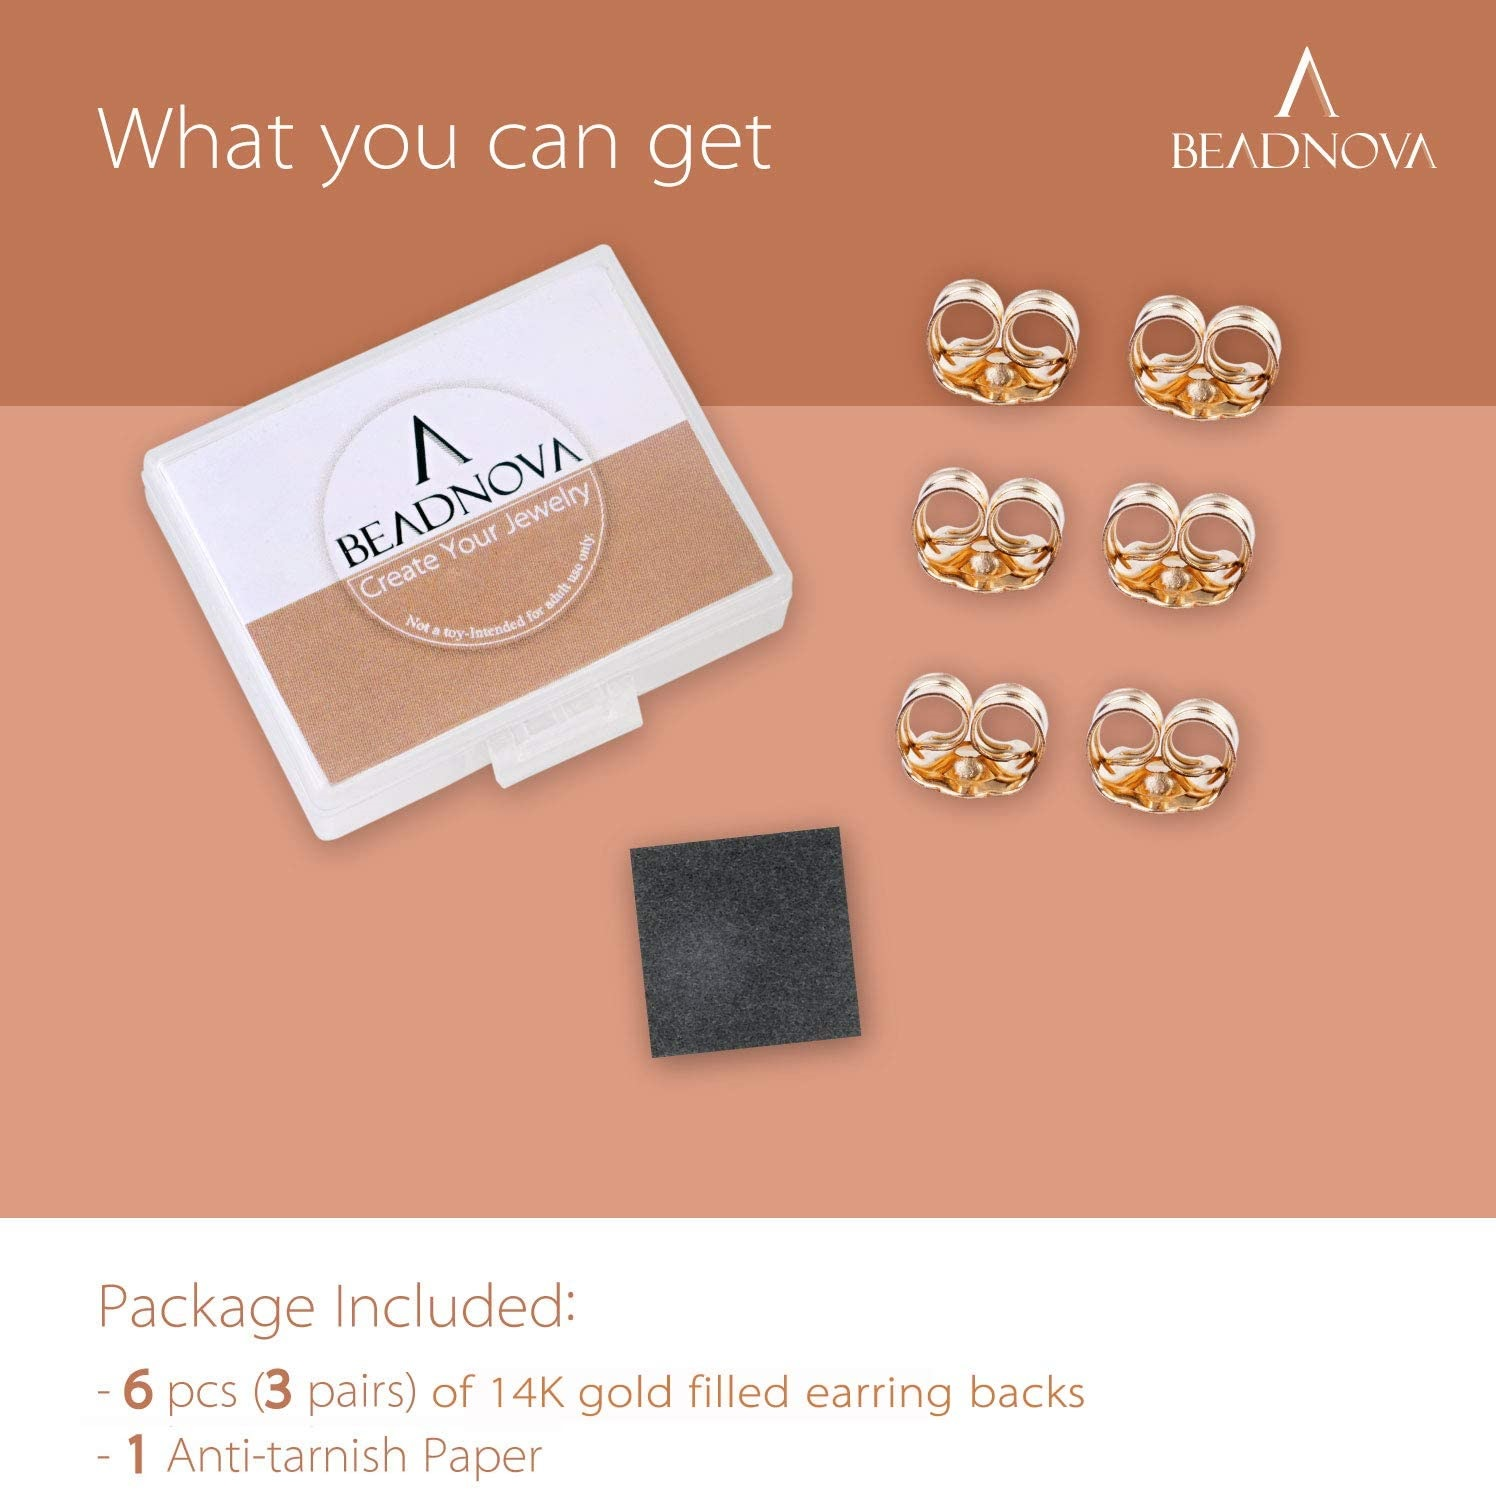 BEADNOVA 14k Gold Earring Backs -3